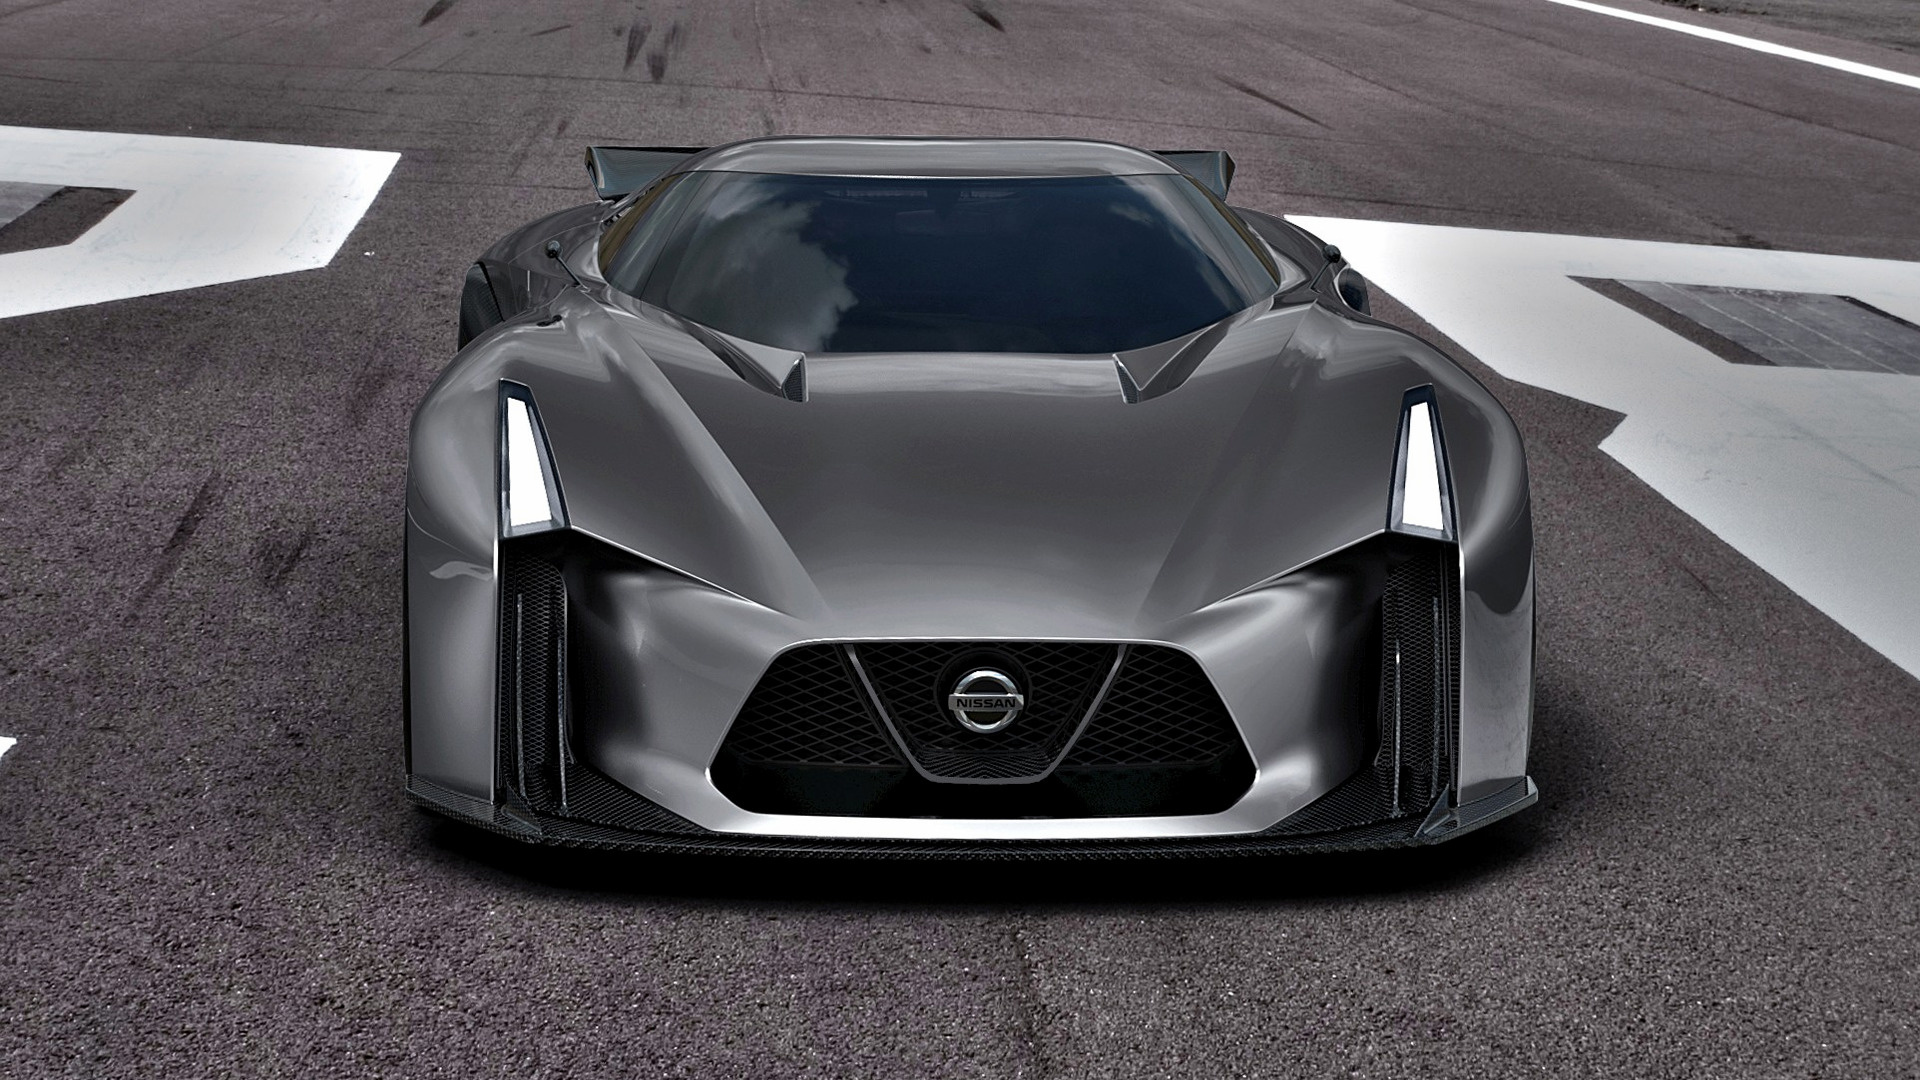 2014 Nissan Concept 2020 Vision Gran Turismo - Wallpapers ...